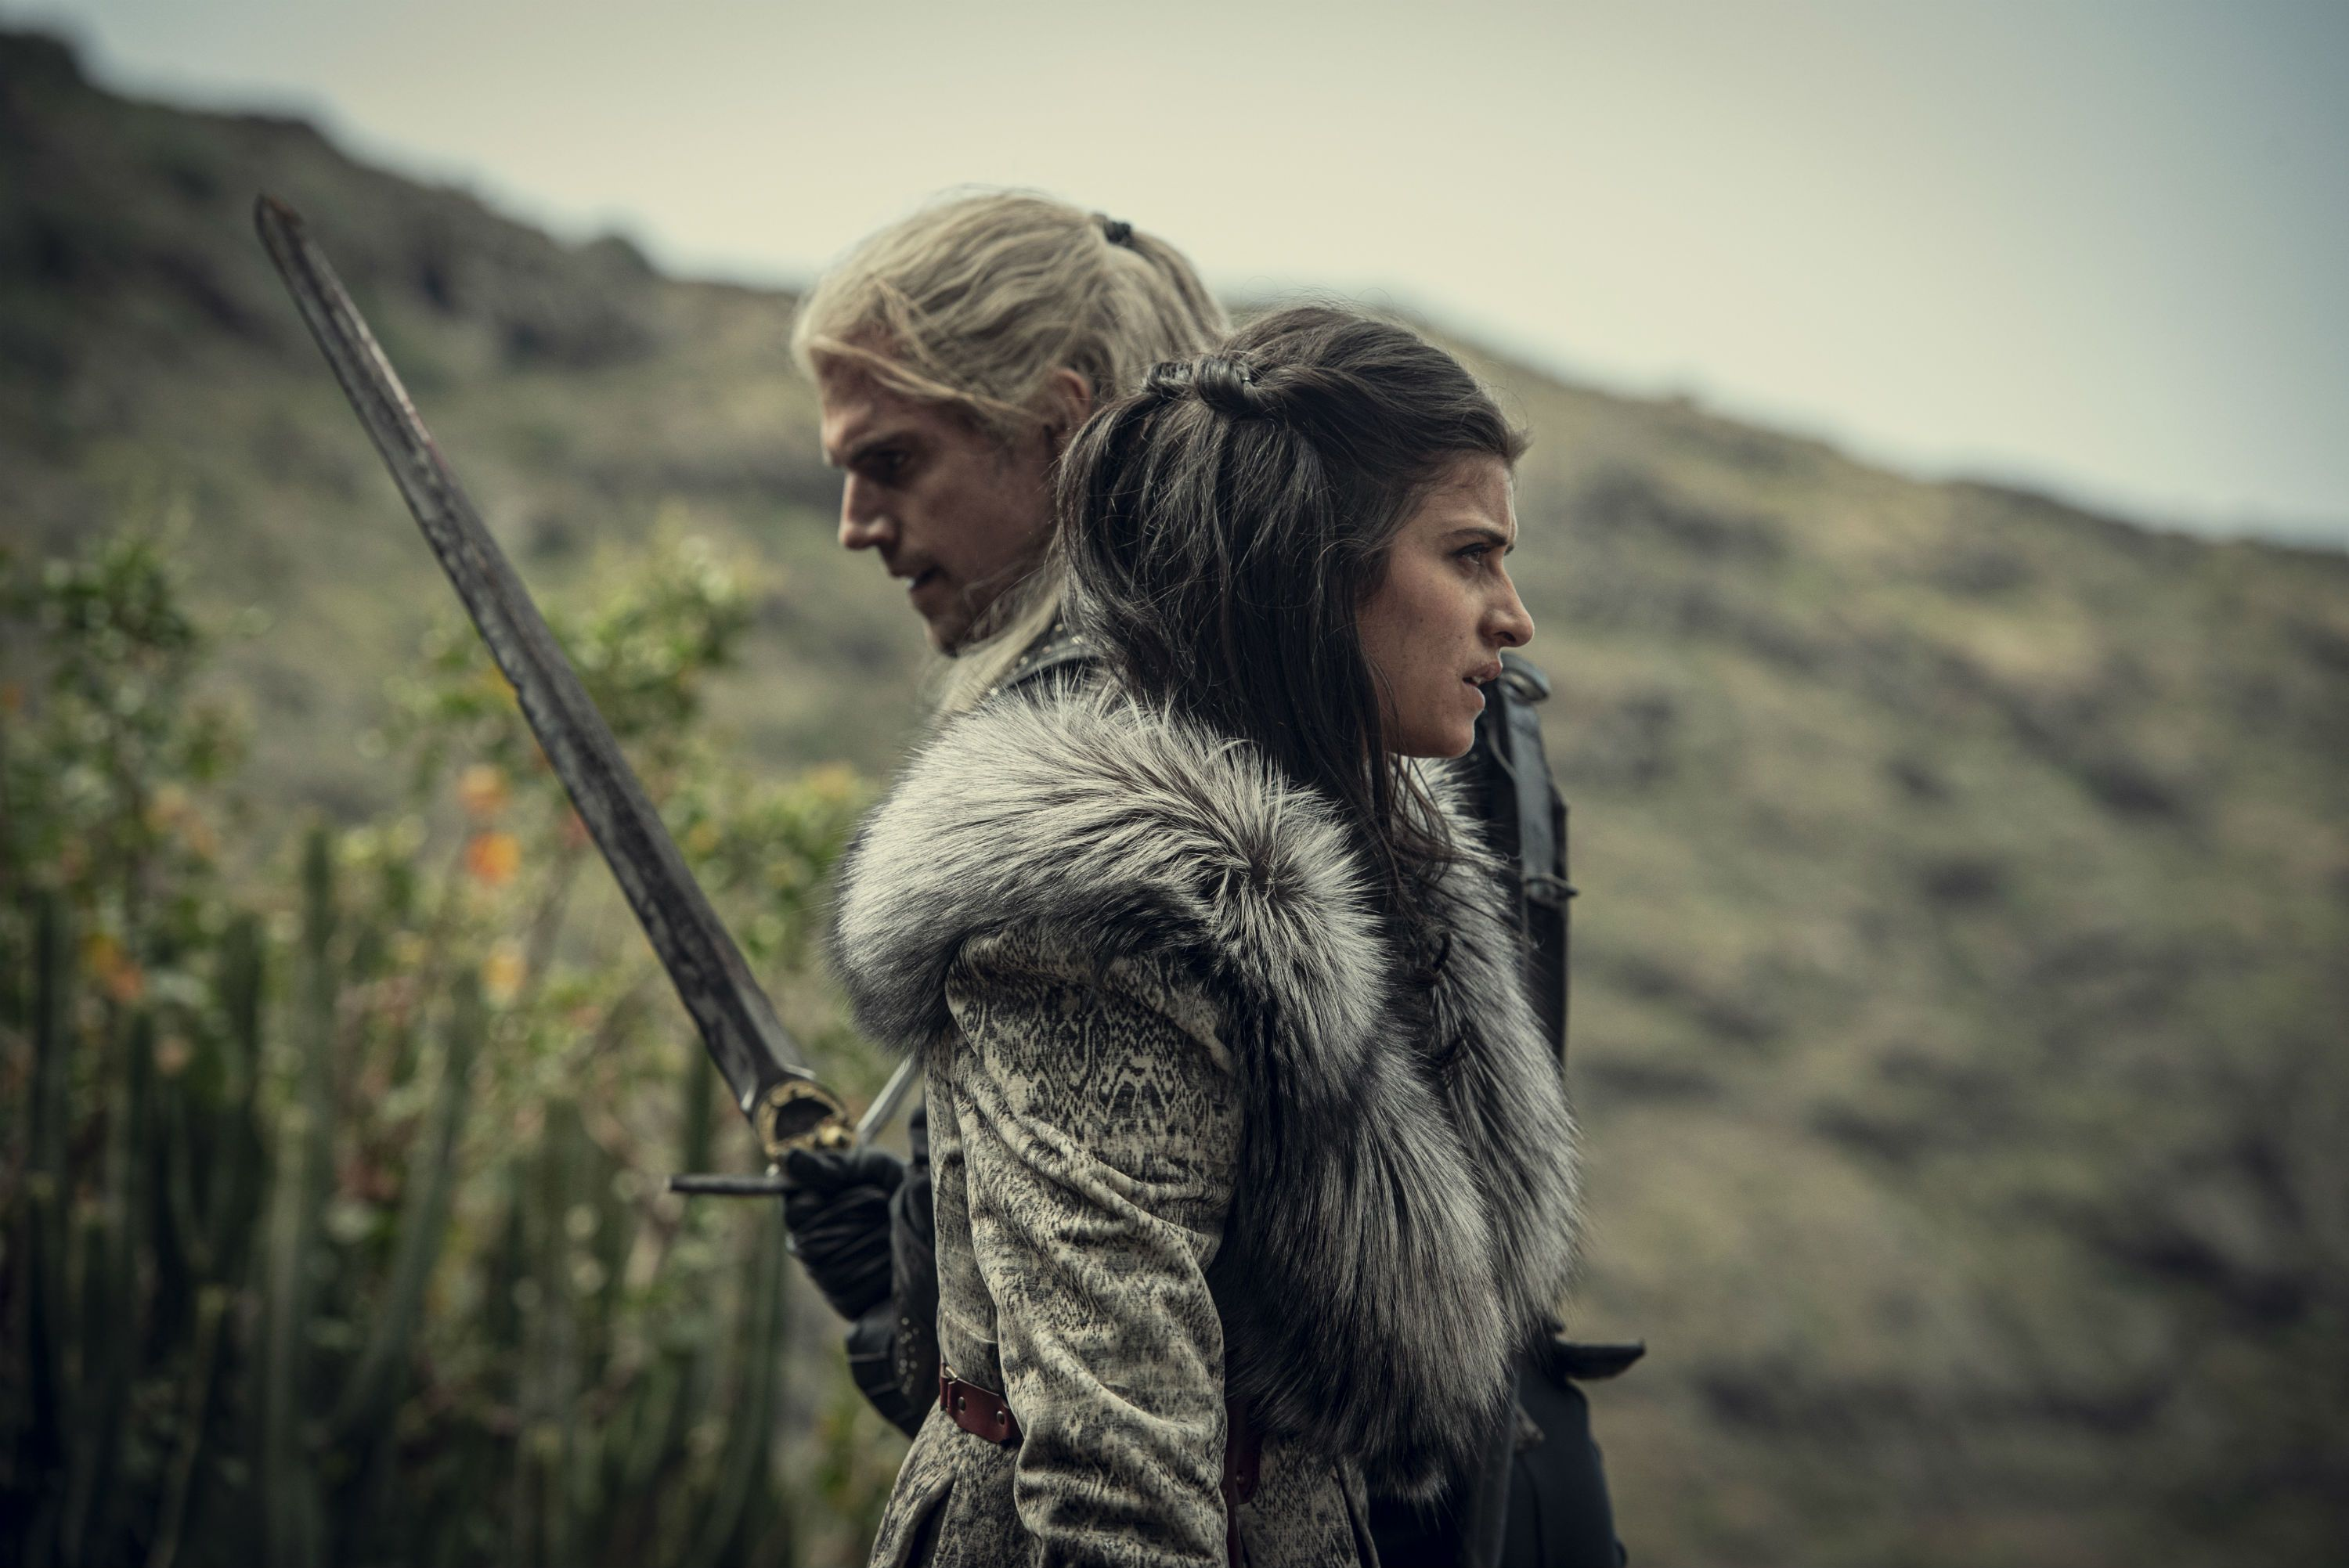 The Witcher boss reveals which scenes she regrets deleting in season 1